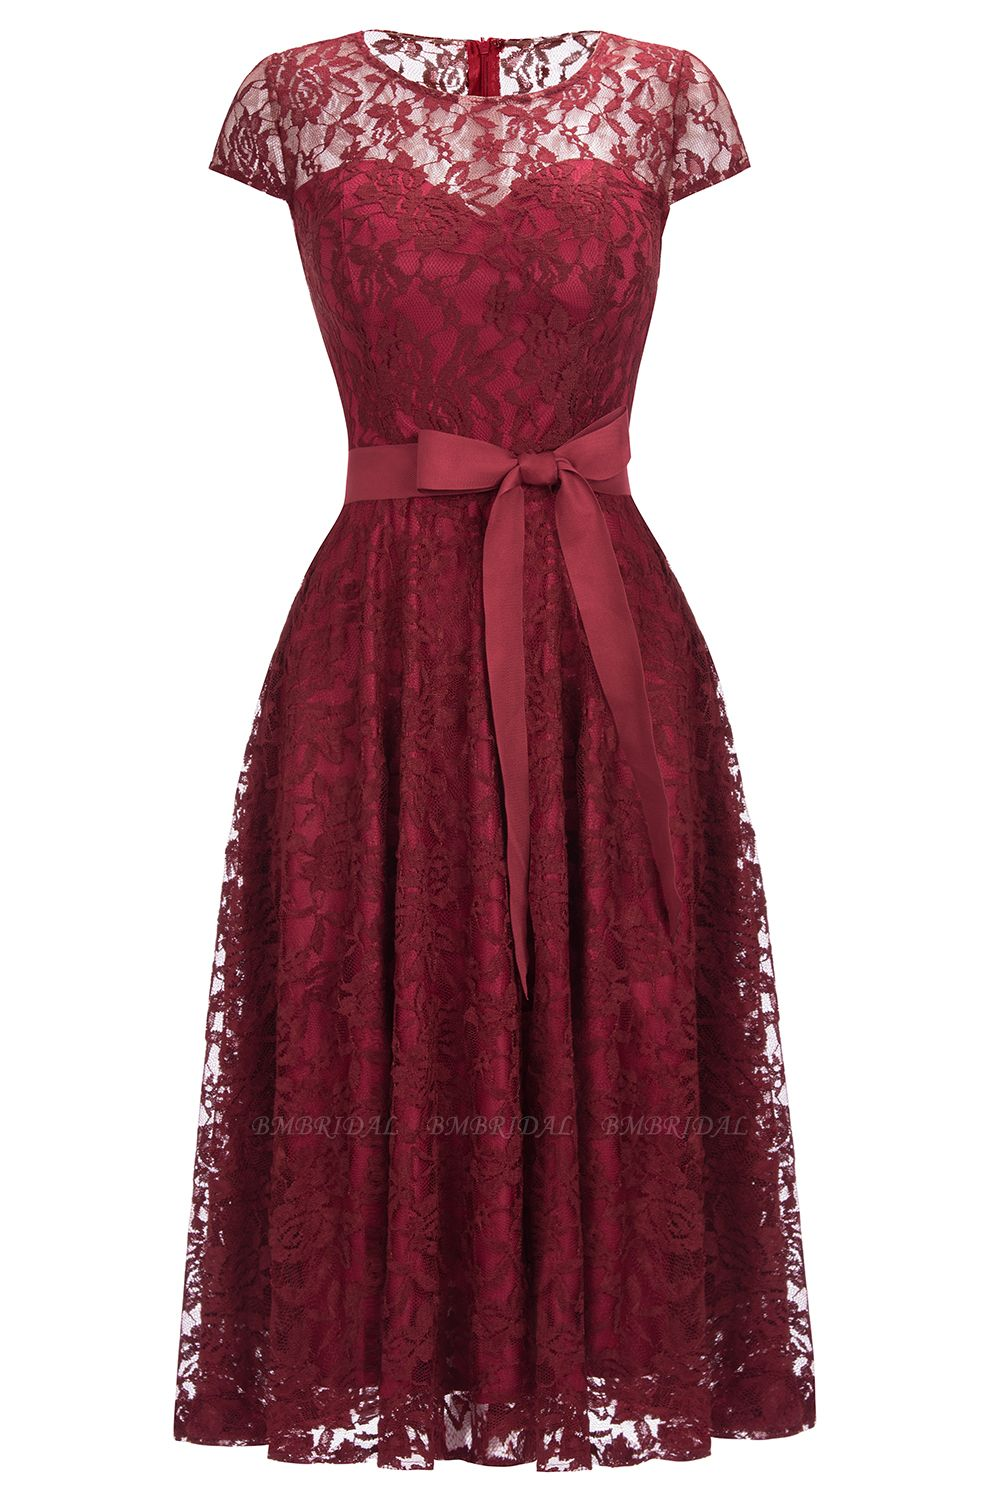 BMbridal Burgundy Lace Short Sleeves A-line Dress with Bow